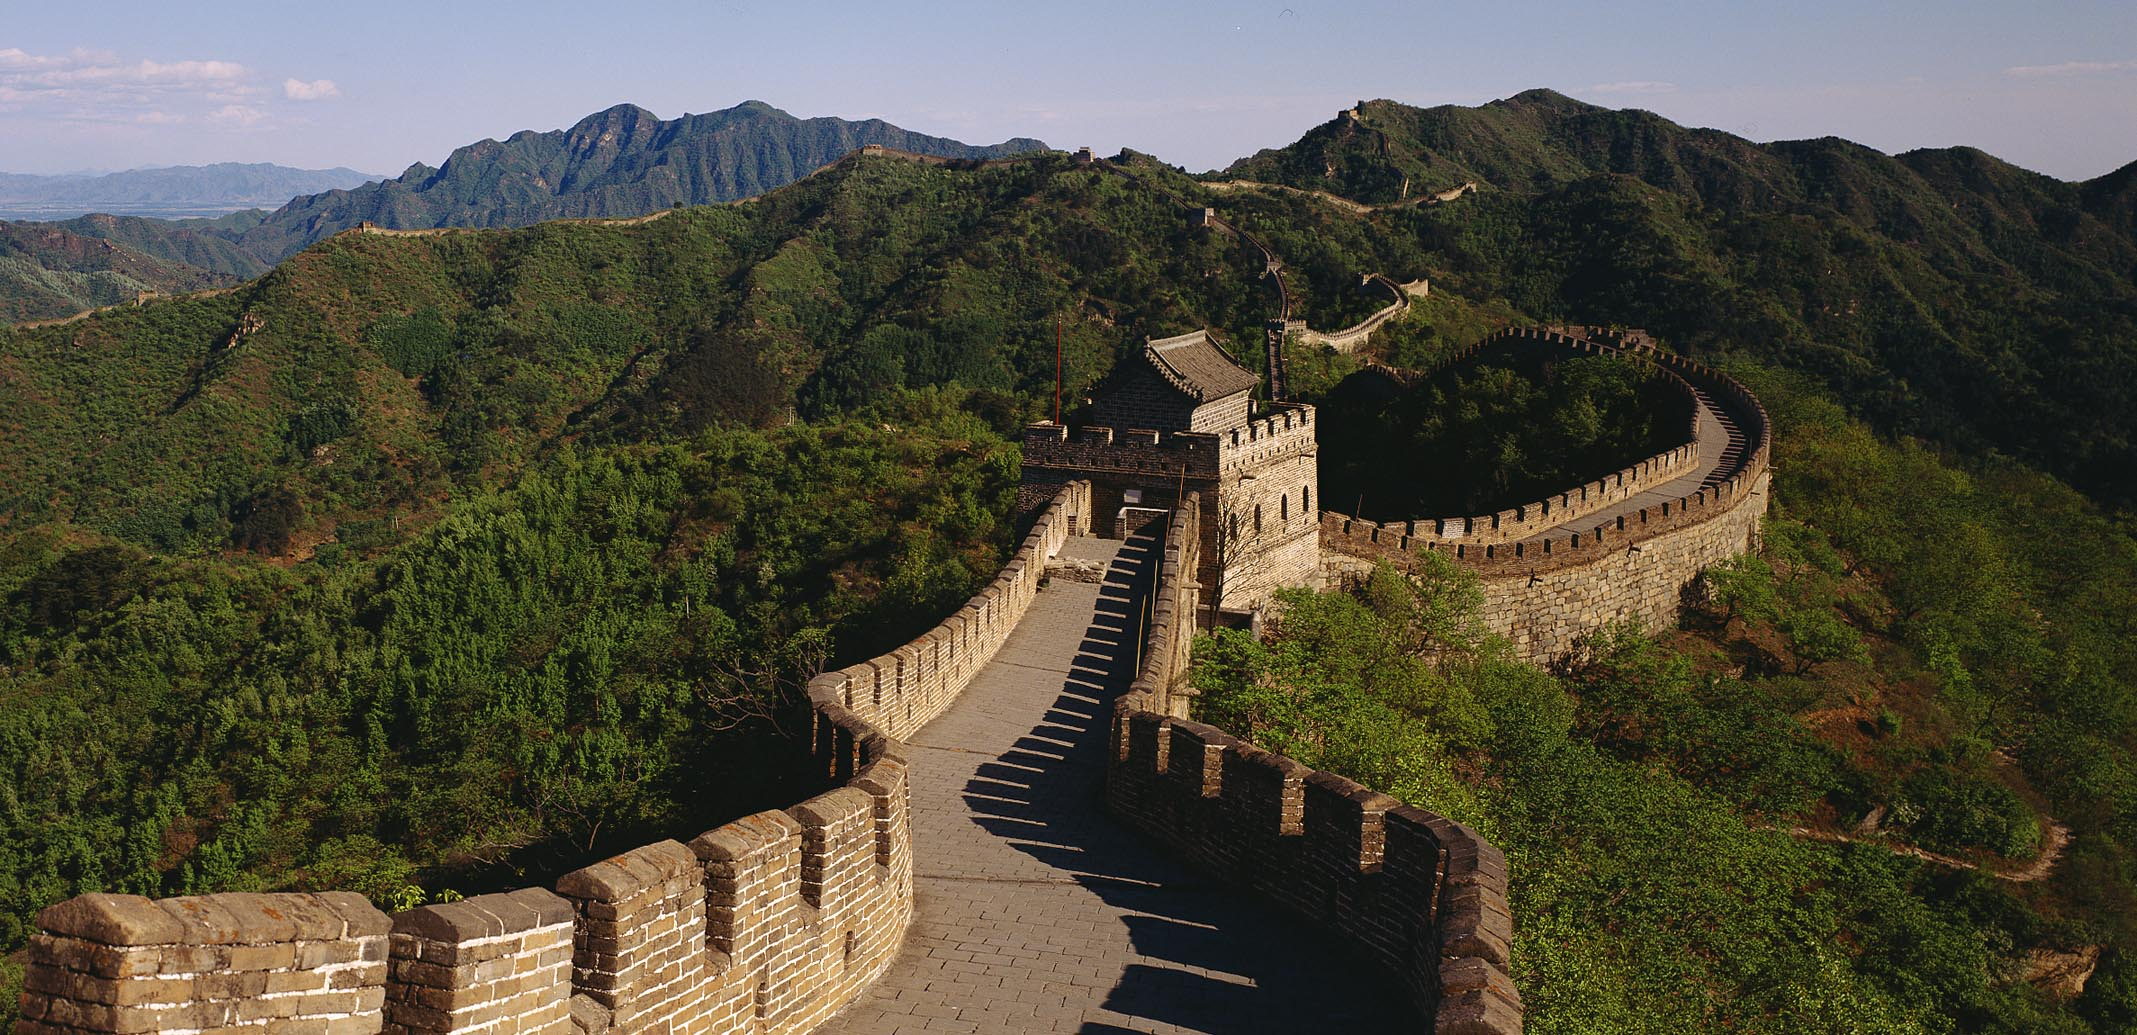 7 Fascinating Great Wall of China Facts - Golden Eagle Luxury Trains